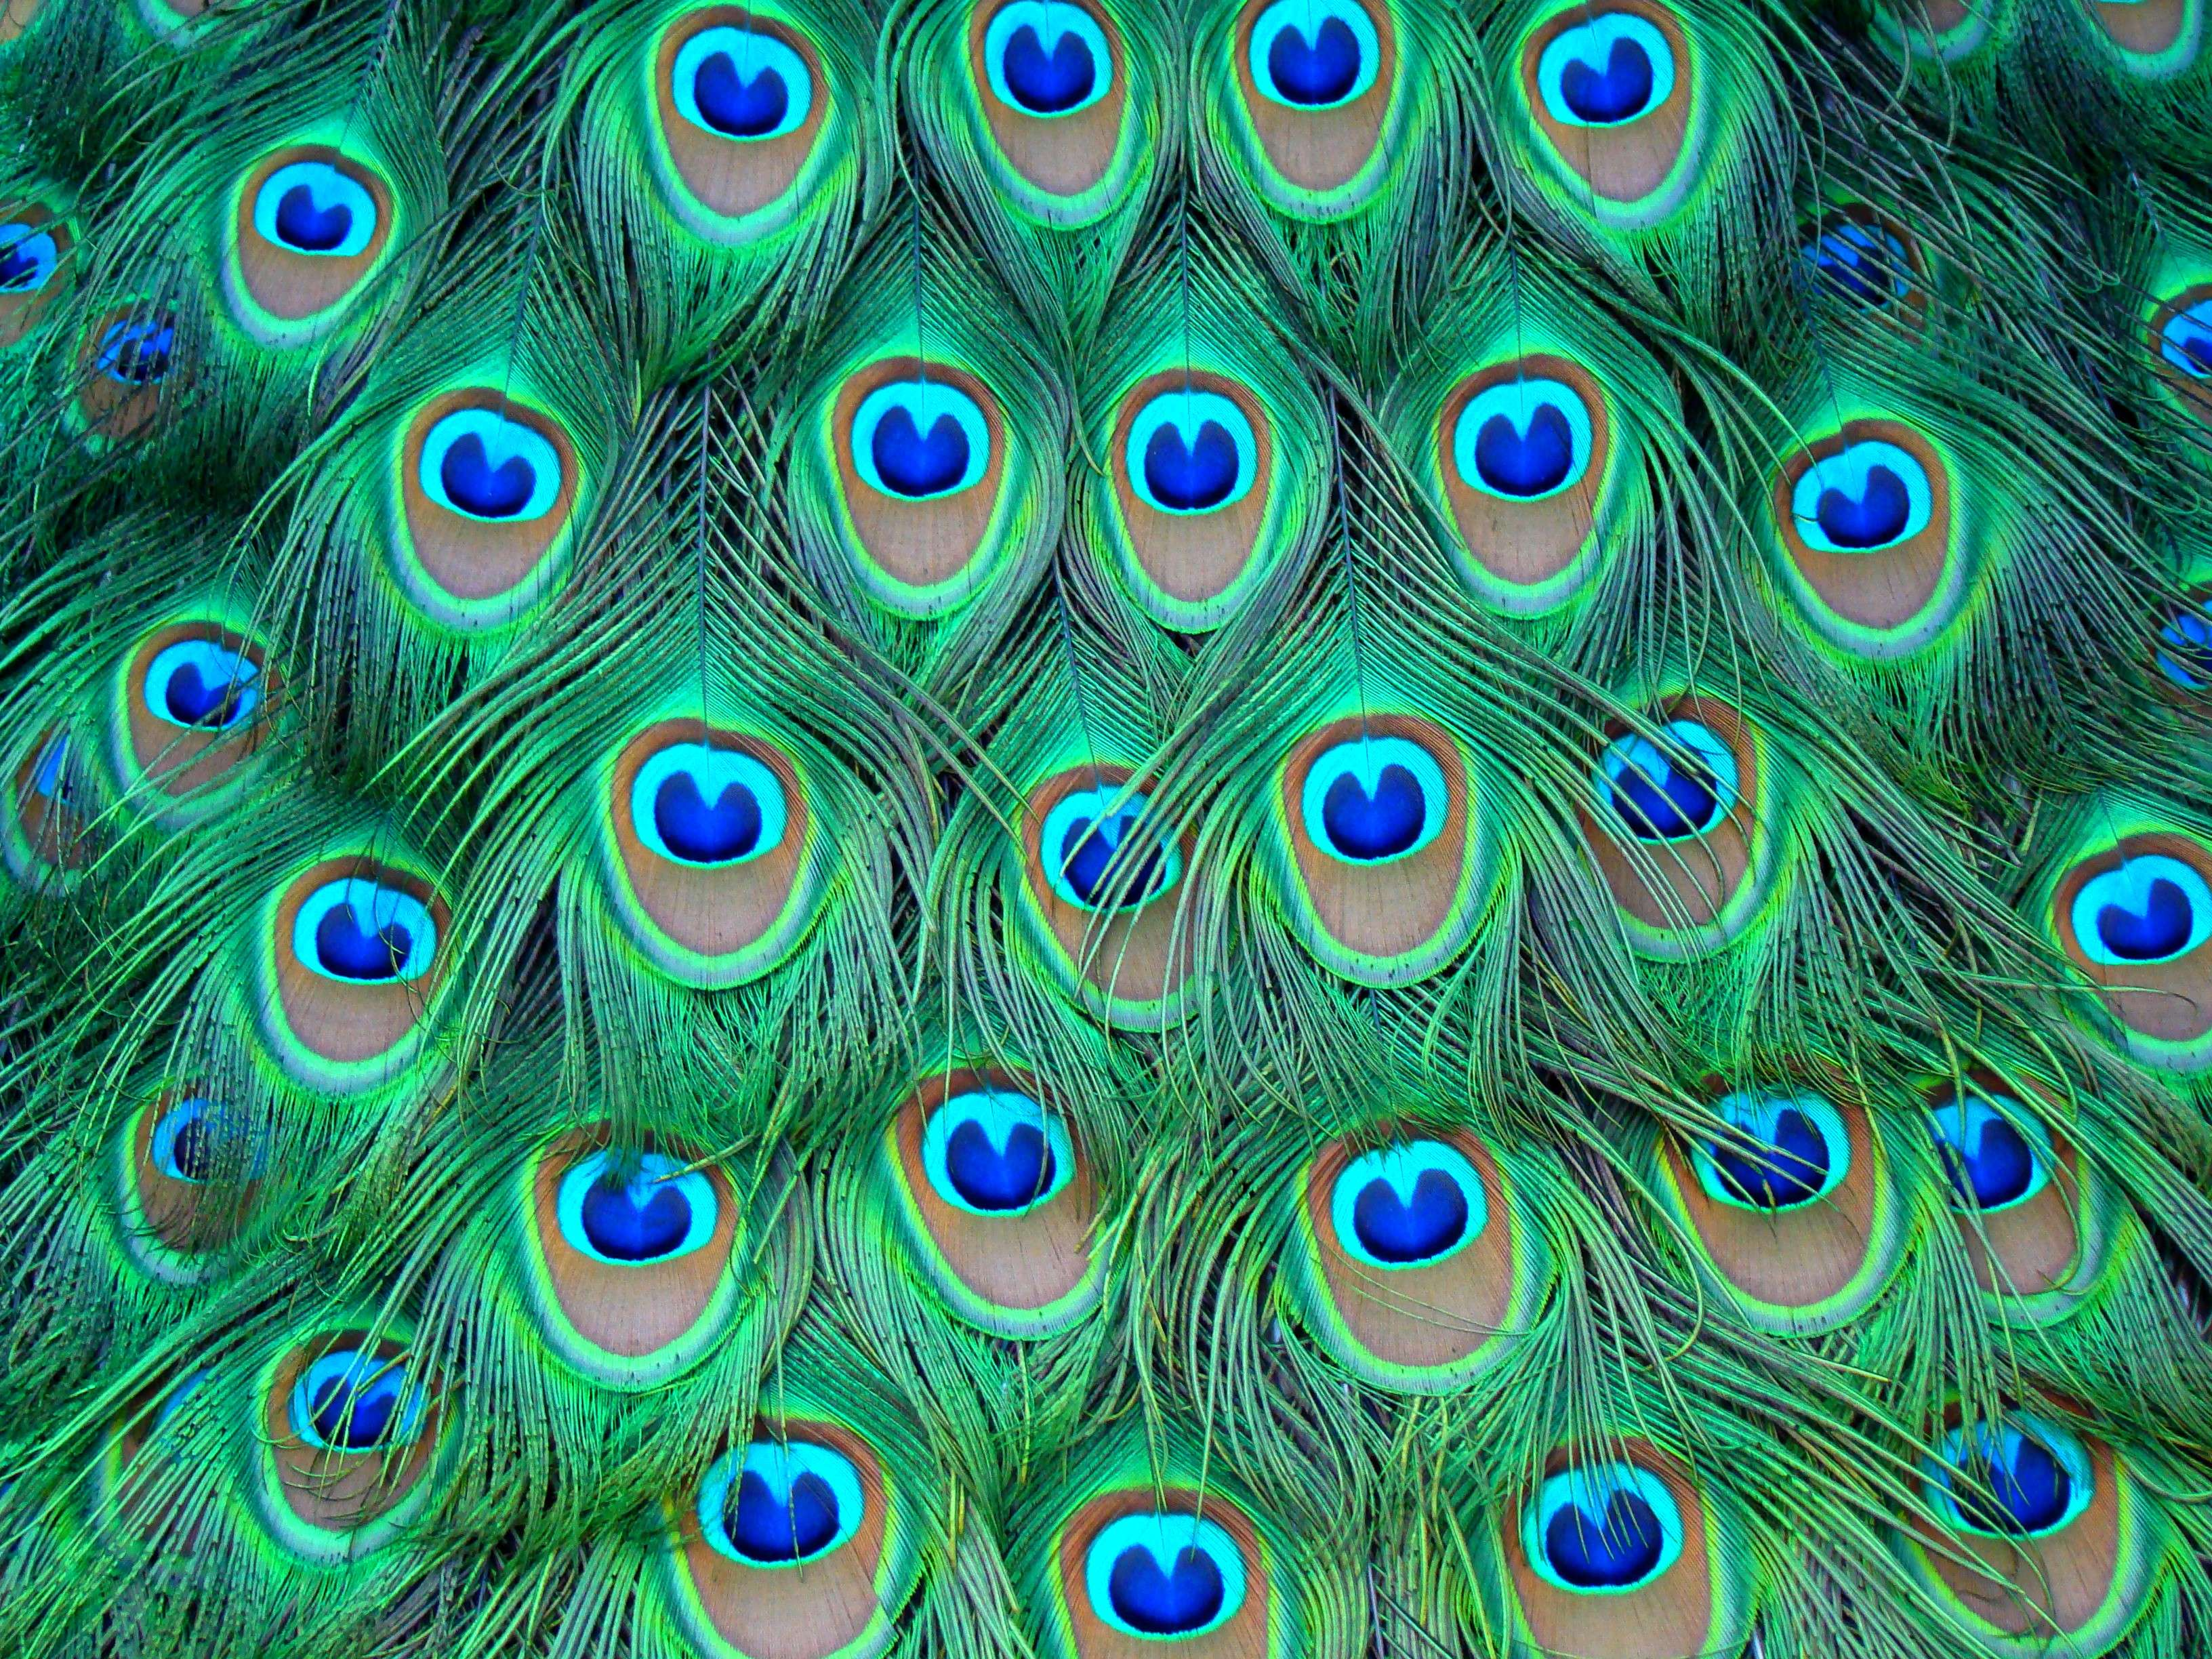 Peacock Art Design 41 Hd Wallpapers Hd Wallpapers